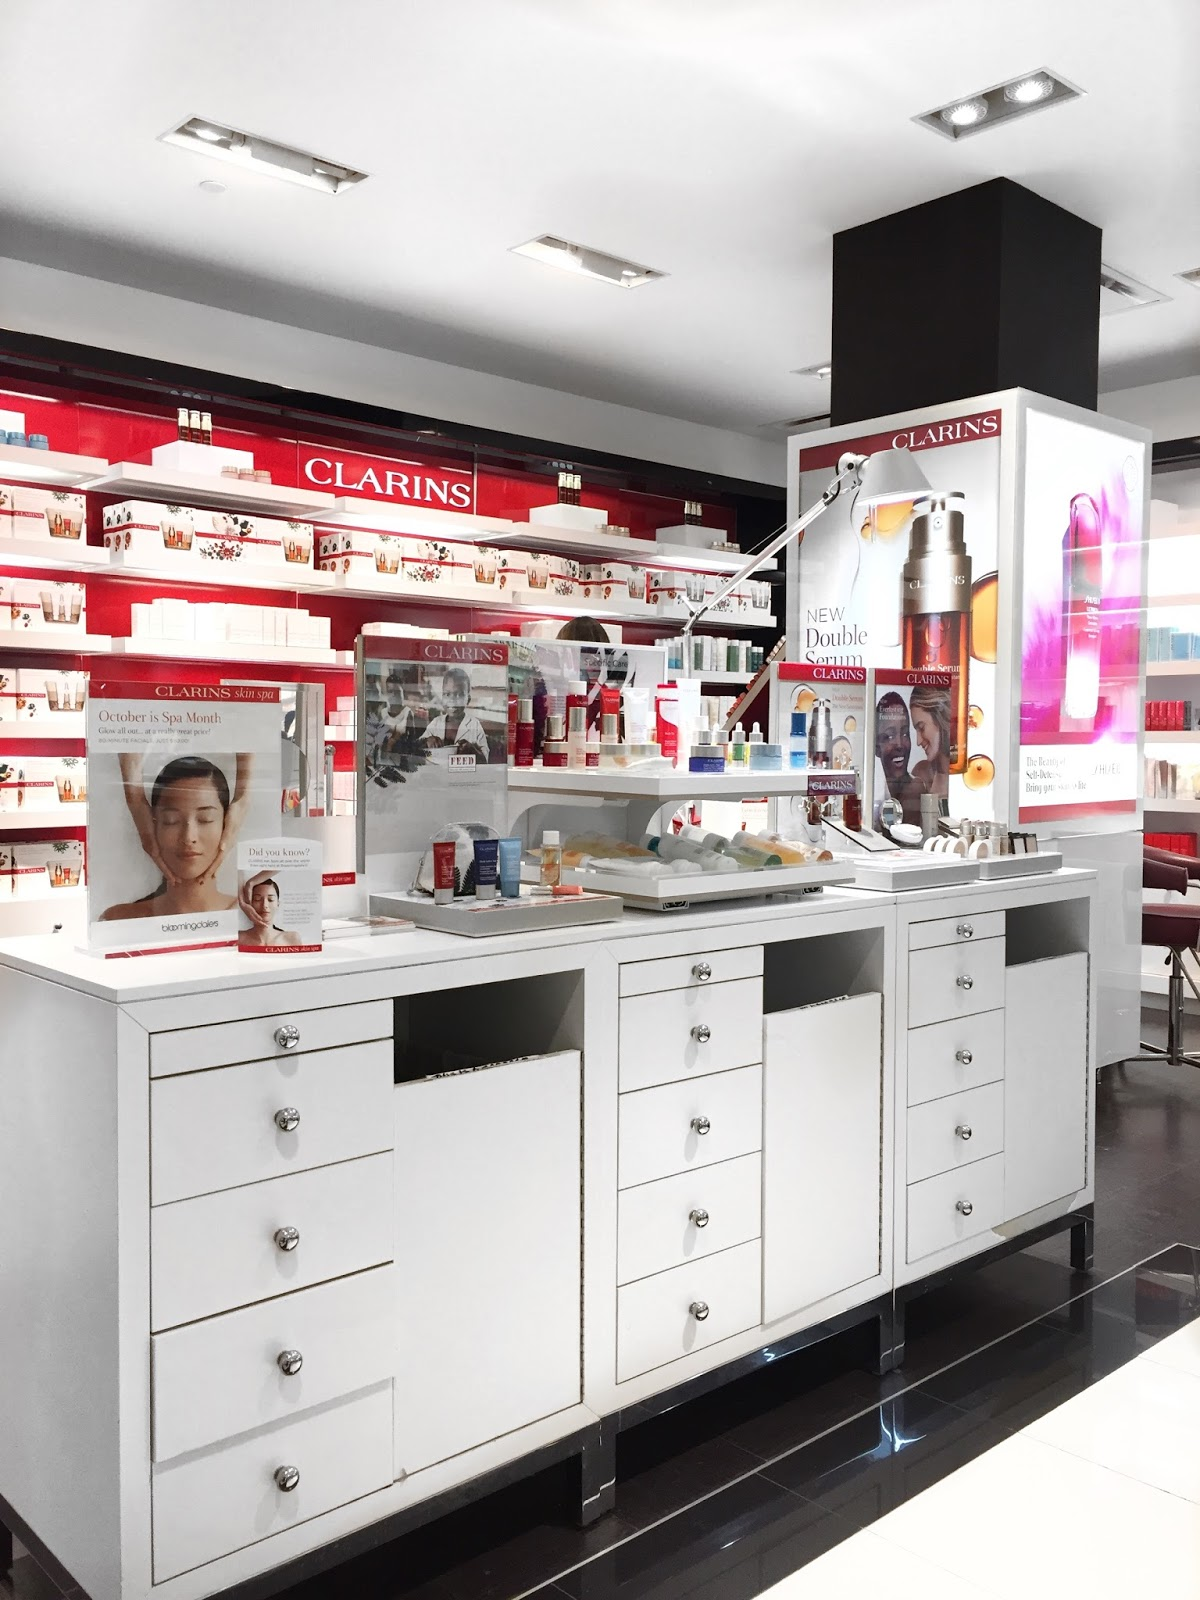 A Couple Of Weeks Ago I Was Invited To Experience The New Clarins Skin Spa  In Bloomingdaleu0027s At Short Hills Mall Here In New Jersey.